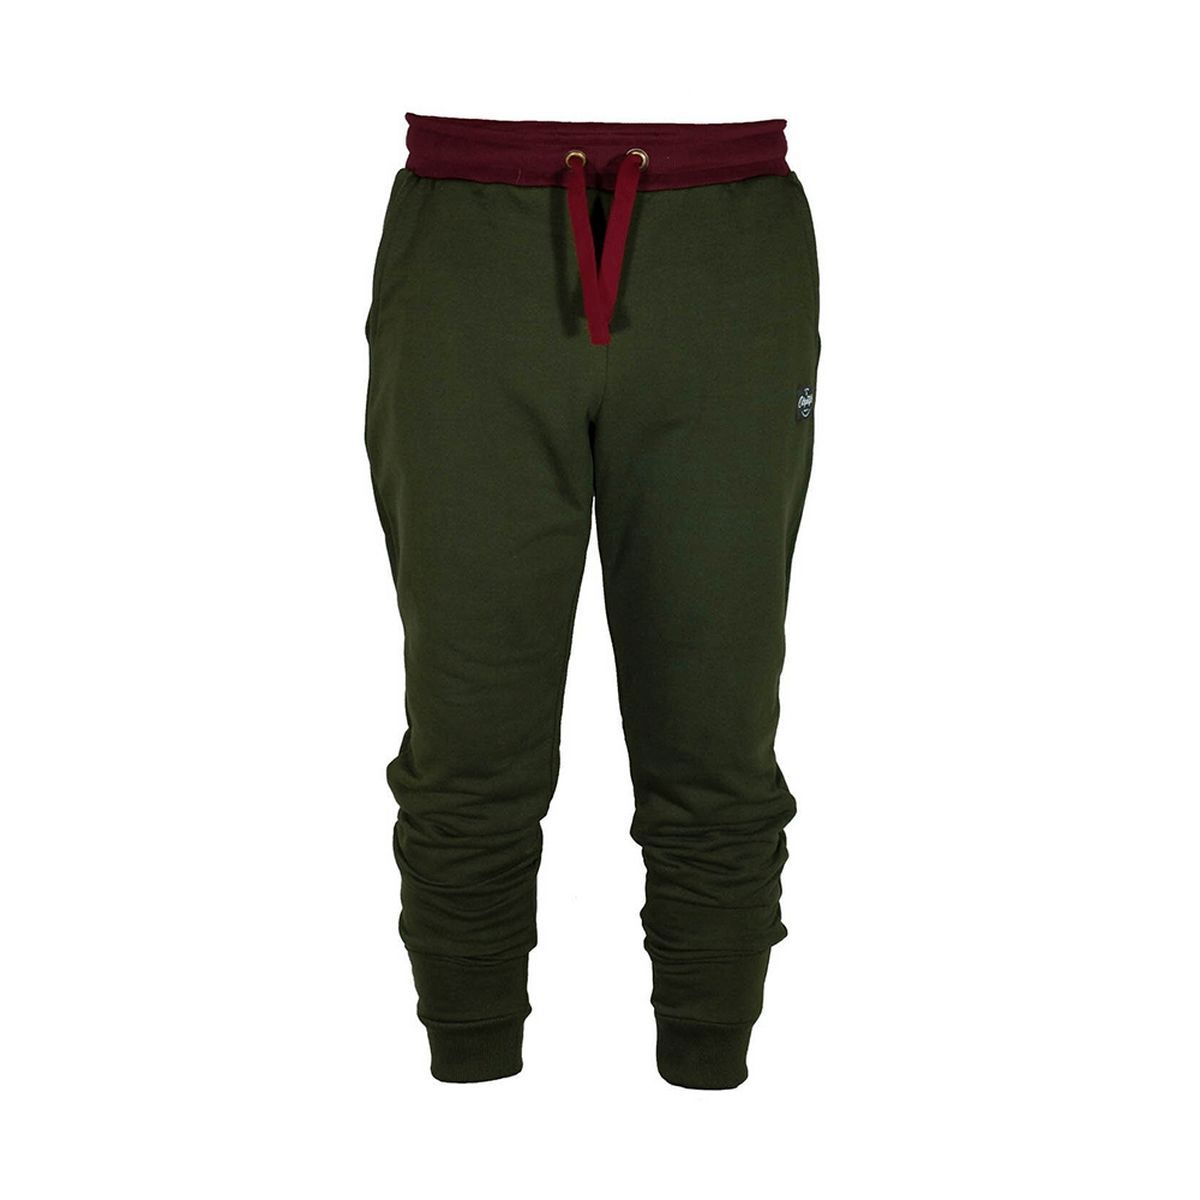 CARPSTYLE GREEN FOREST JOGGERS - S